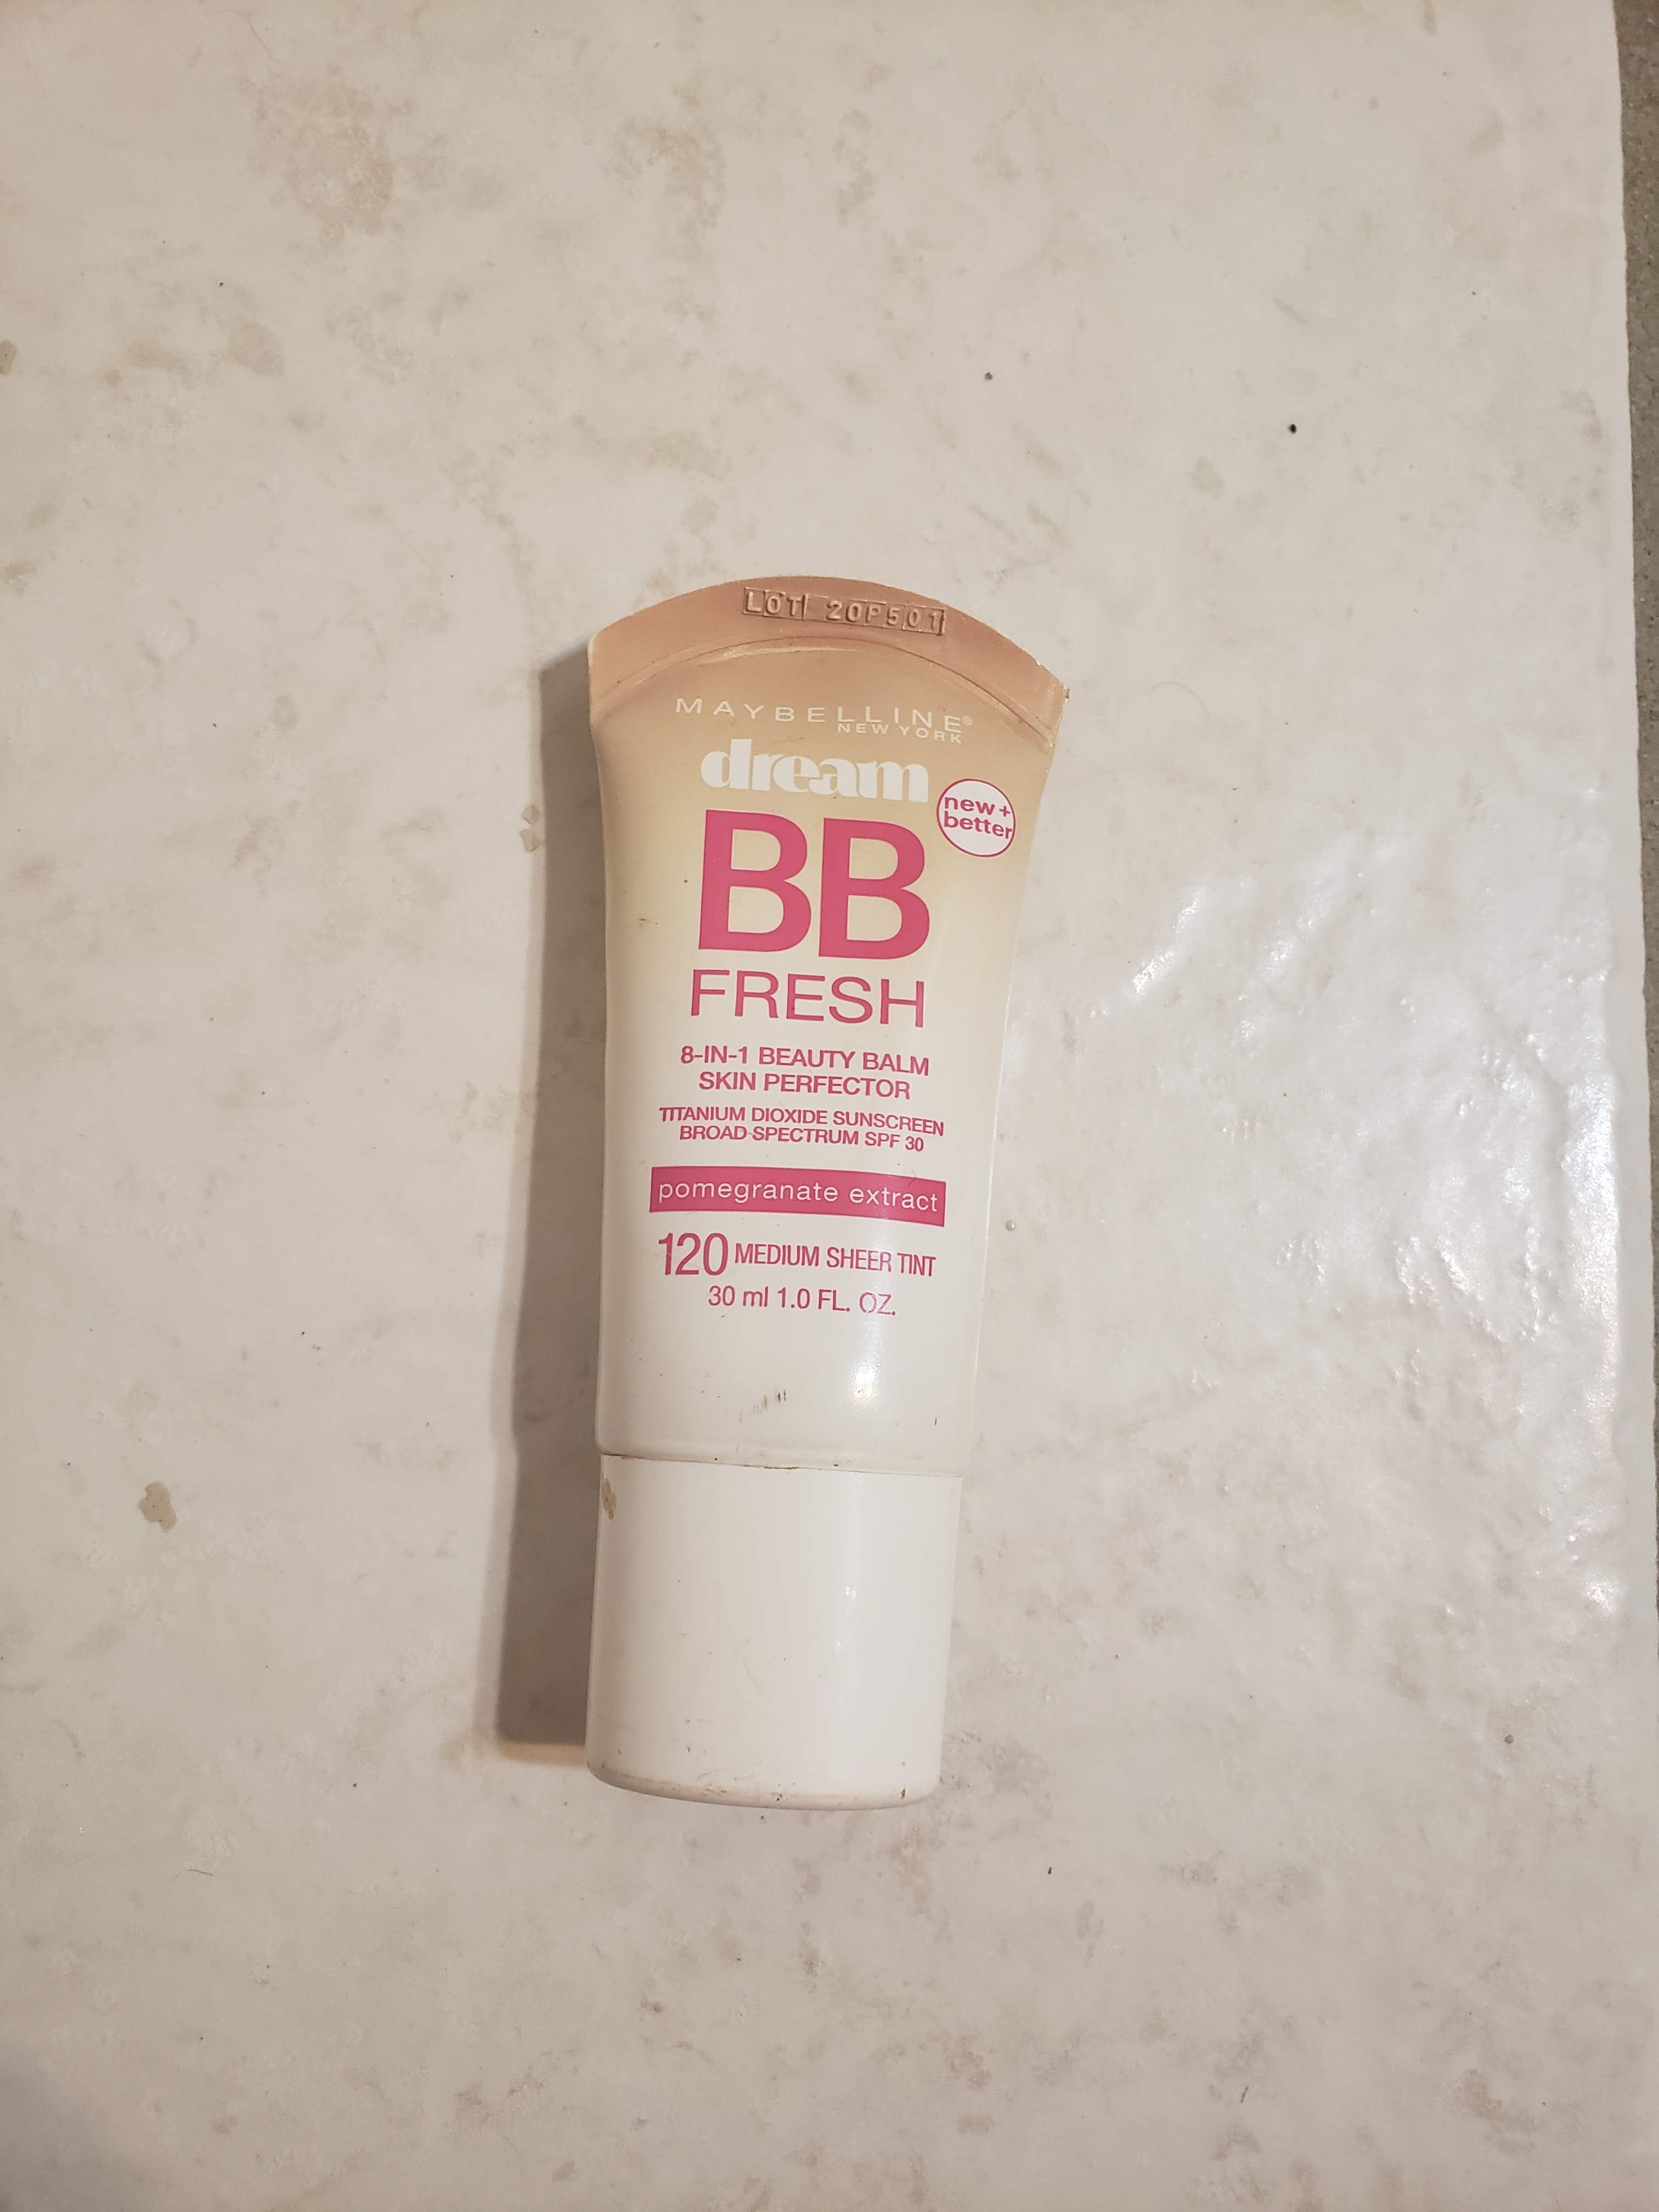 I've used the Dream BB Cream for years, and it has never let me down. It's affordable and lightweight, and truly all the coverage I need.